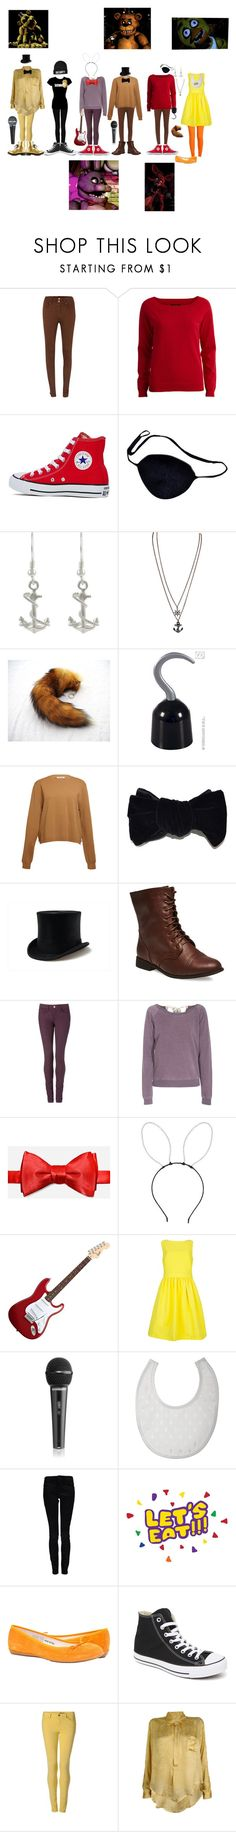 """""""FNAF"""" by lizziedacrazyginger ❤ liked on Polyvore featuring Salsa, VILA, Converse, Tressa, Acne Studios, Wet Seal, Tommy Hilfiger, Juvia, Topshop and Ted Baker"""